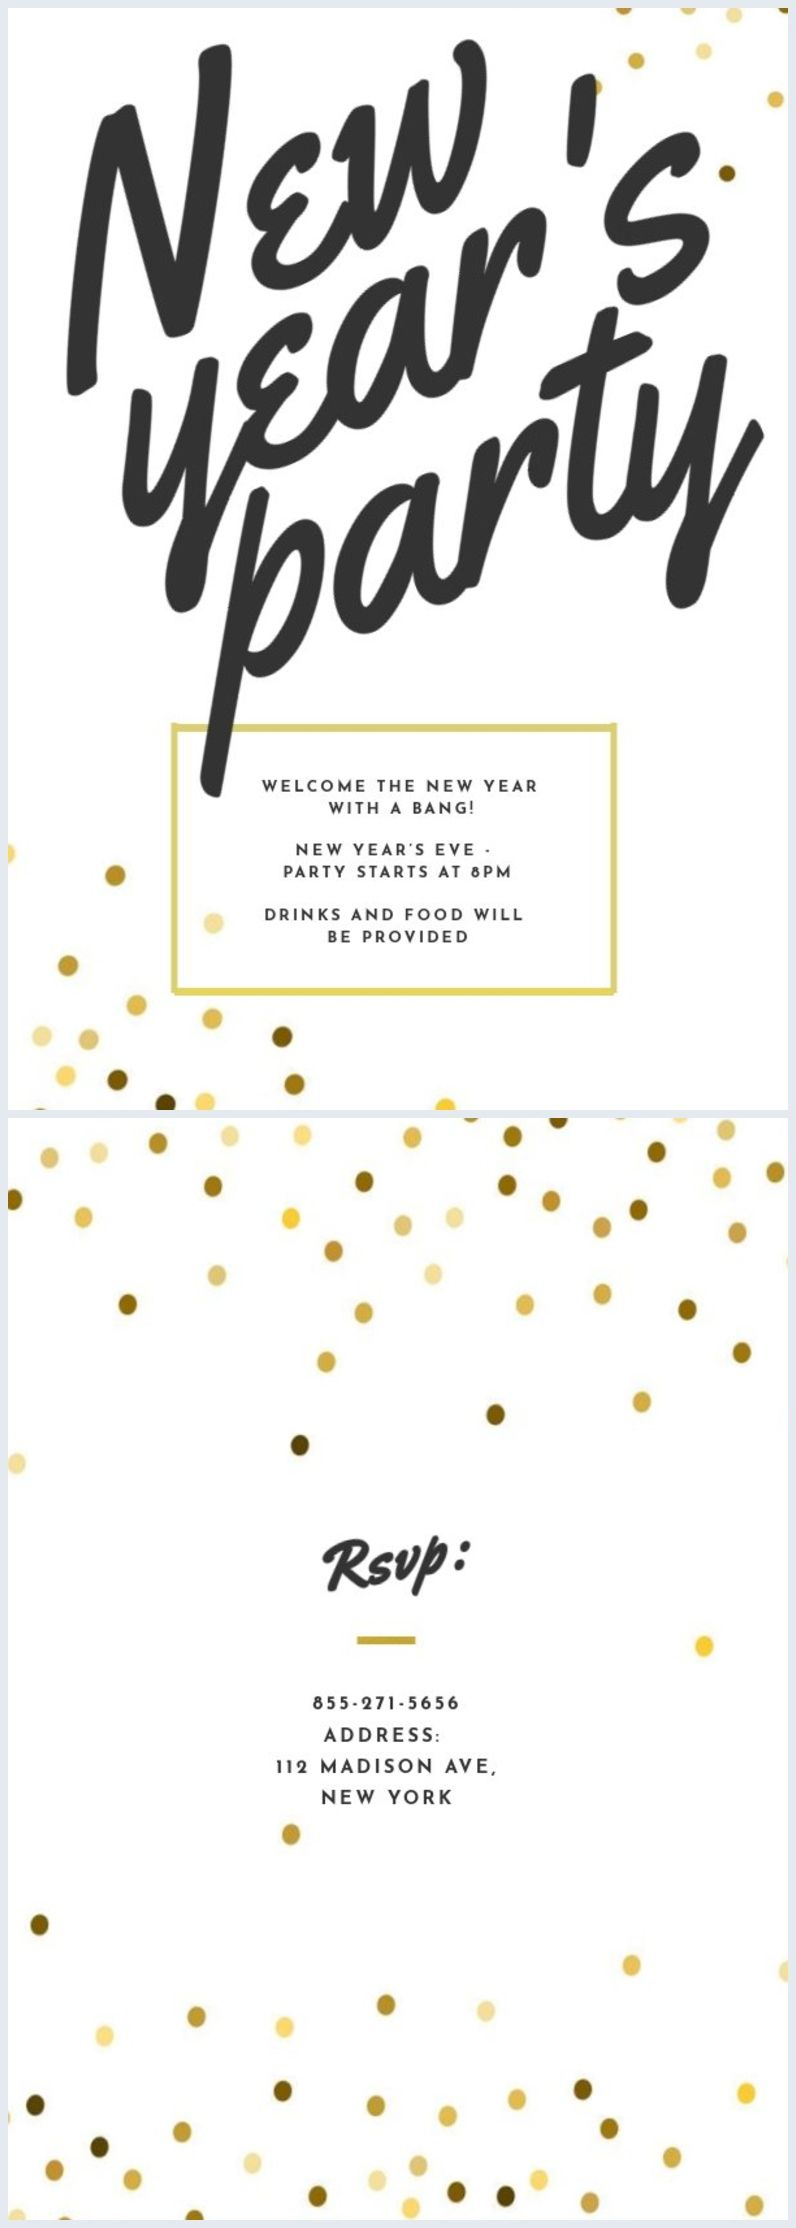 Modern New Year's Eve Party Invite Template (With images